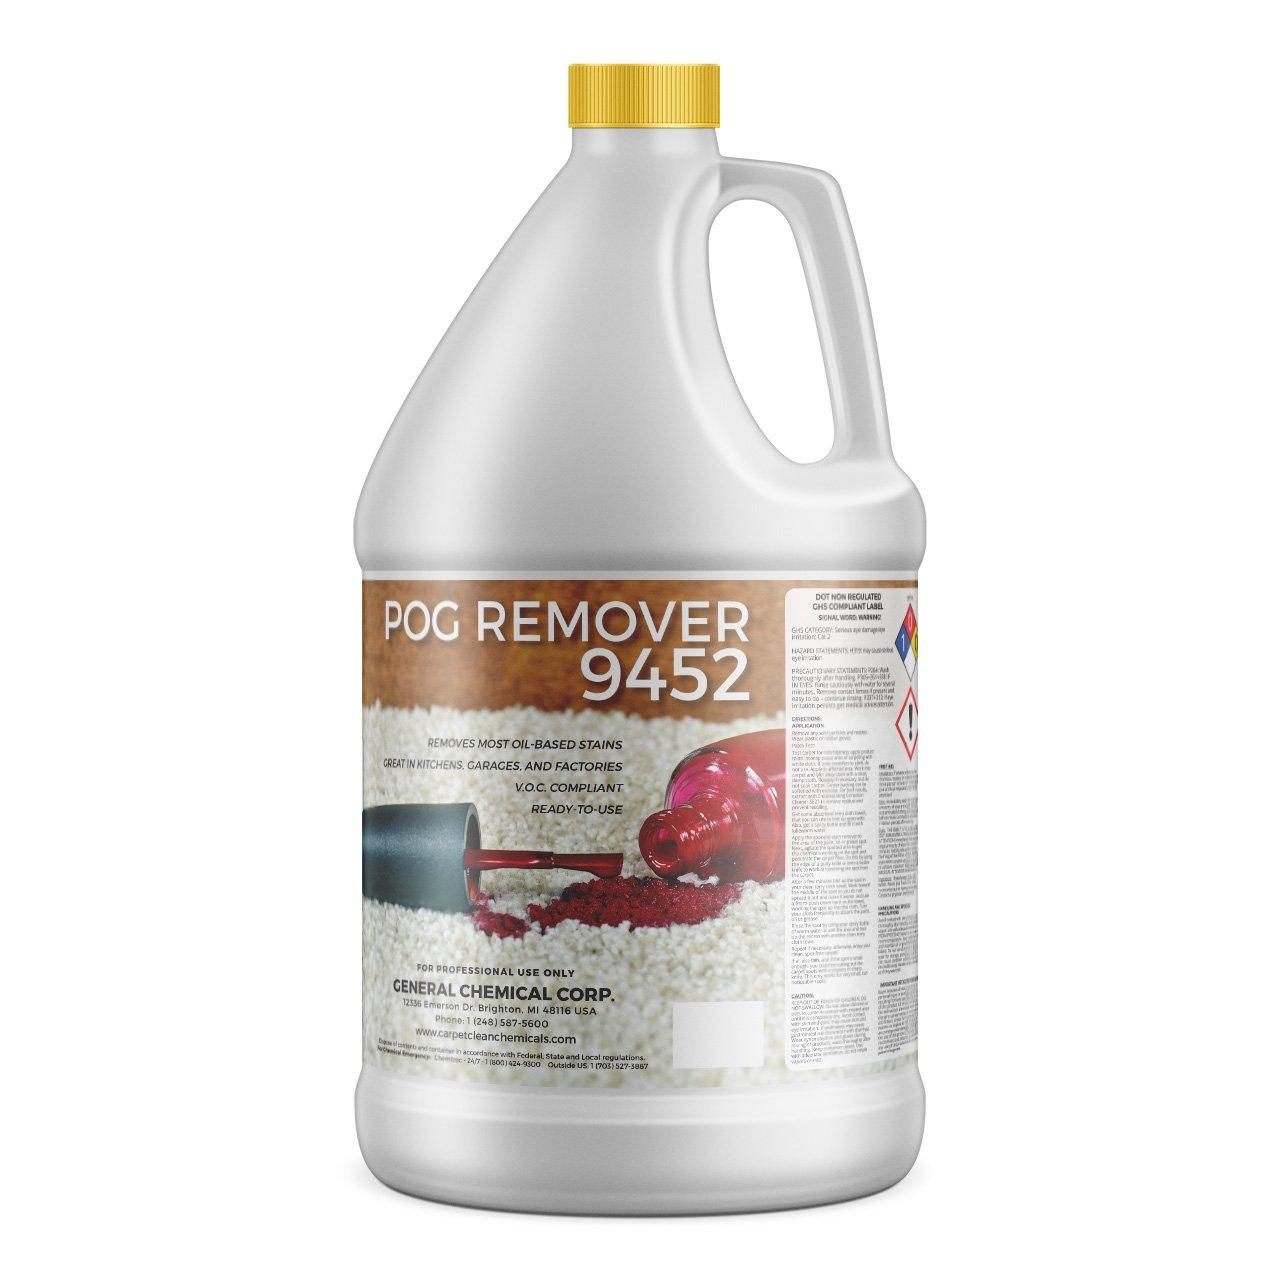 POG Remover by CarpetGeneral | Paint, Oil & Grease Remover | | Multi Purpose Cleaning Liquid | Removes Stains | Heavy Duty | Non-Toxic Formula | Residential, Industrial & Commercial Use | 1 Gal